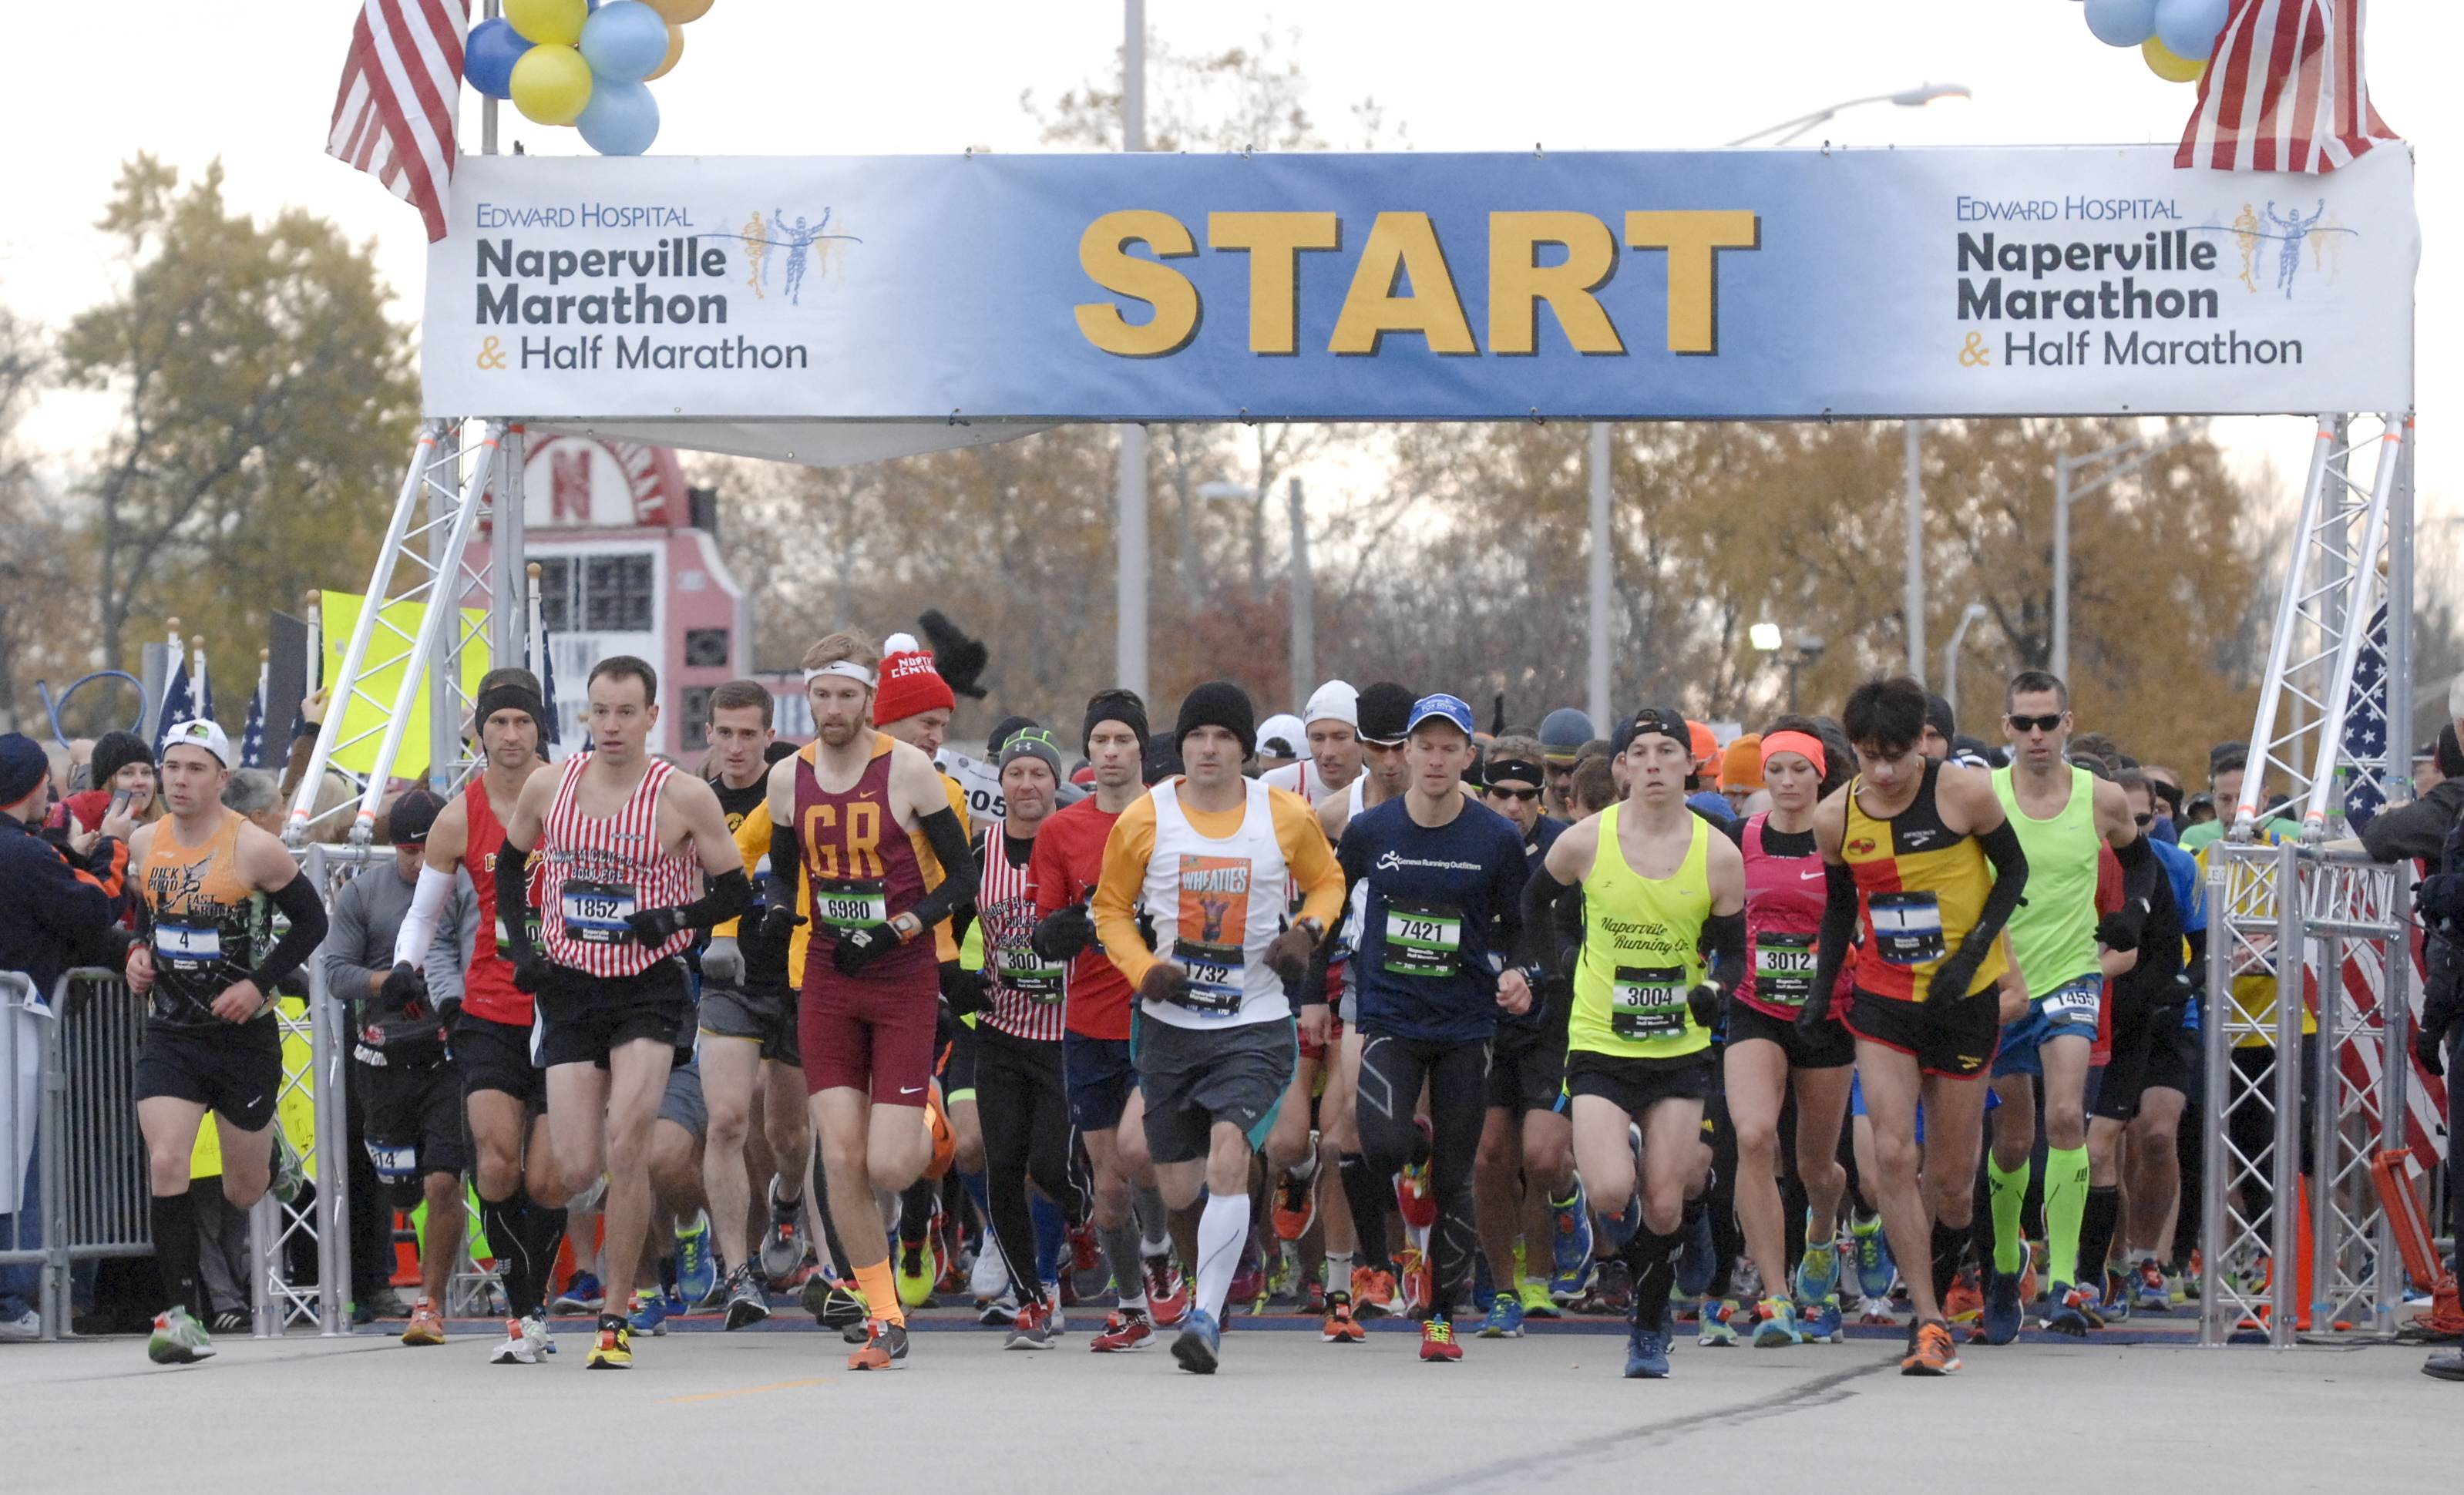 Naperville Marathon plans more downtown involvement